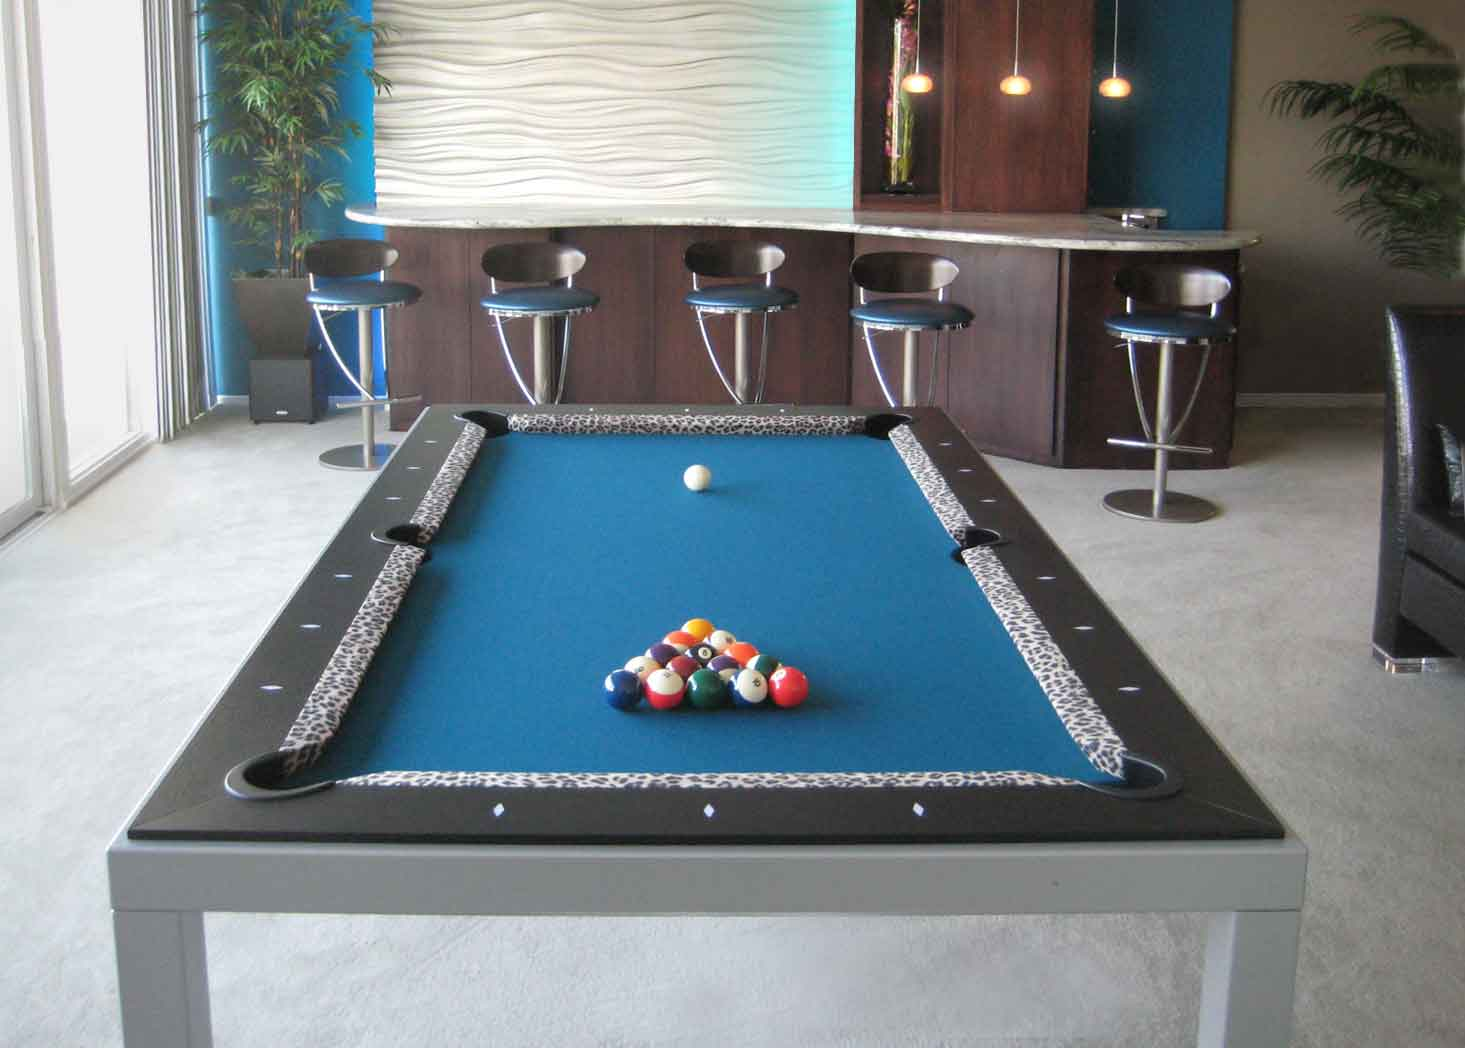 Show Your Wild Side Dk Billiard Service Pool Tables For